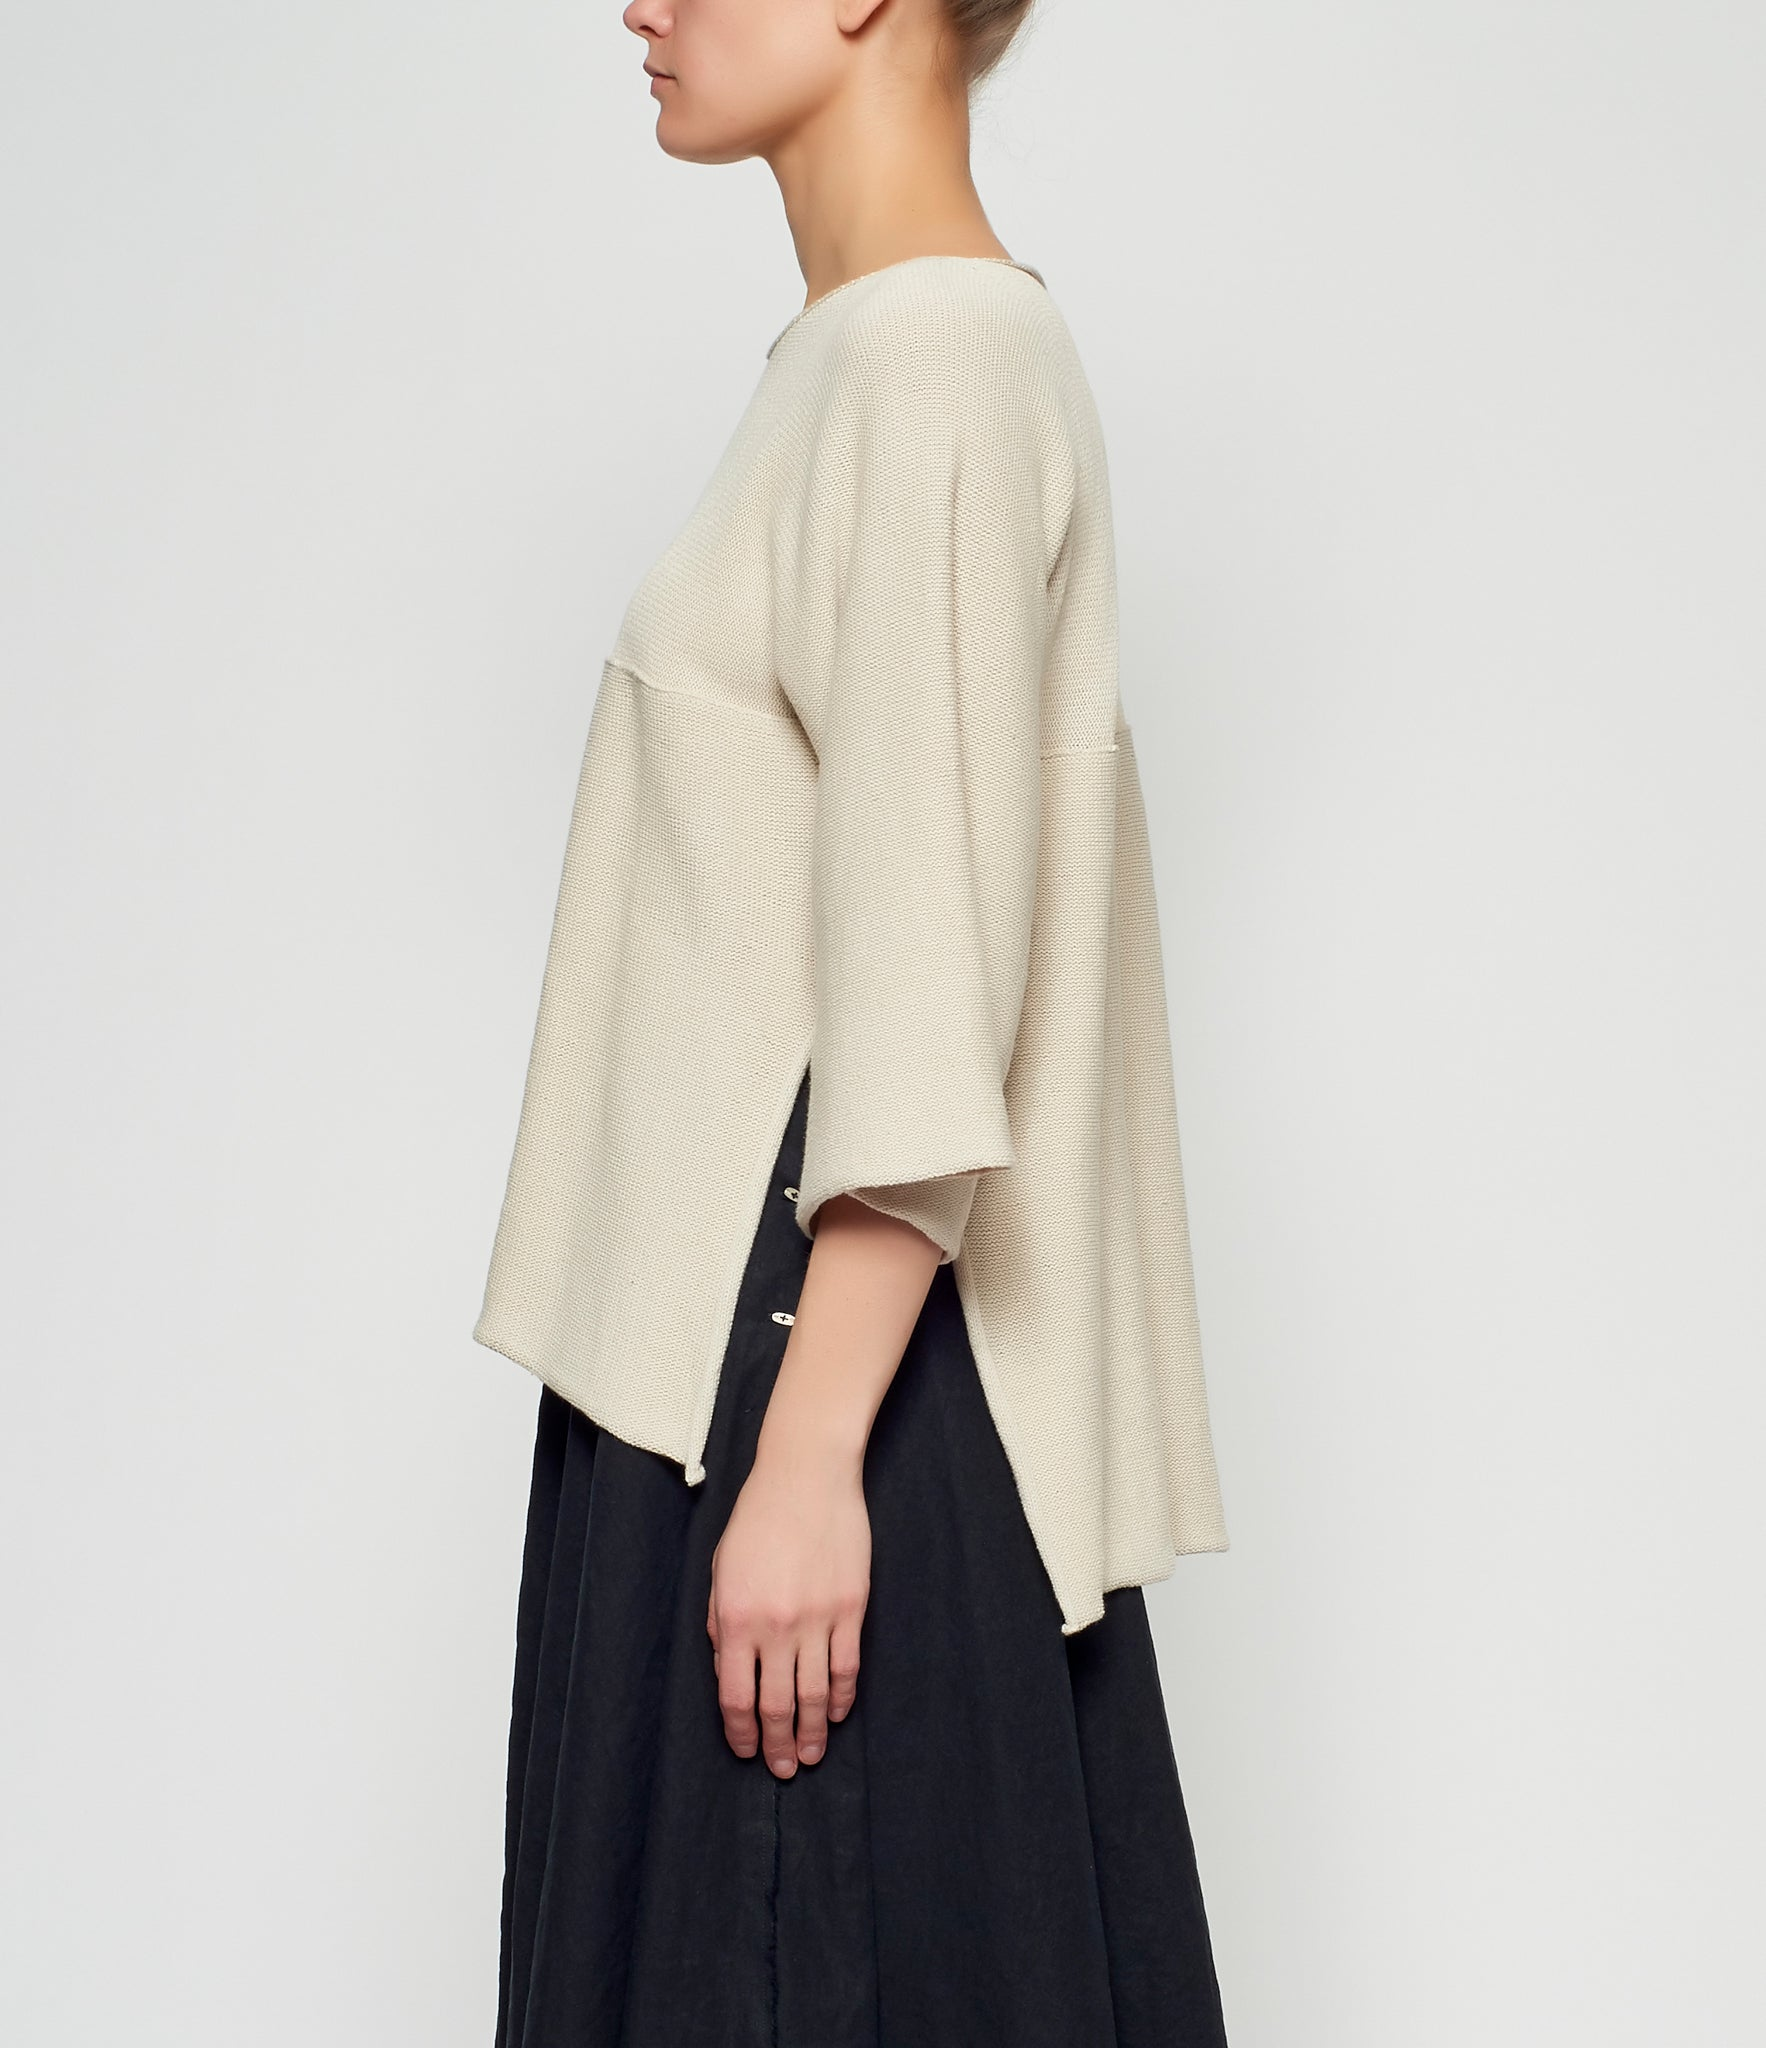 m.a+ Open Side Oversized Pullover